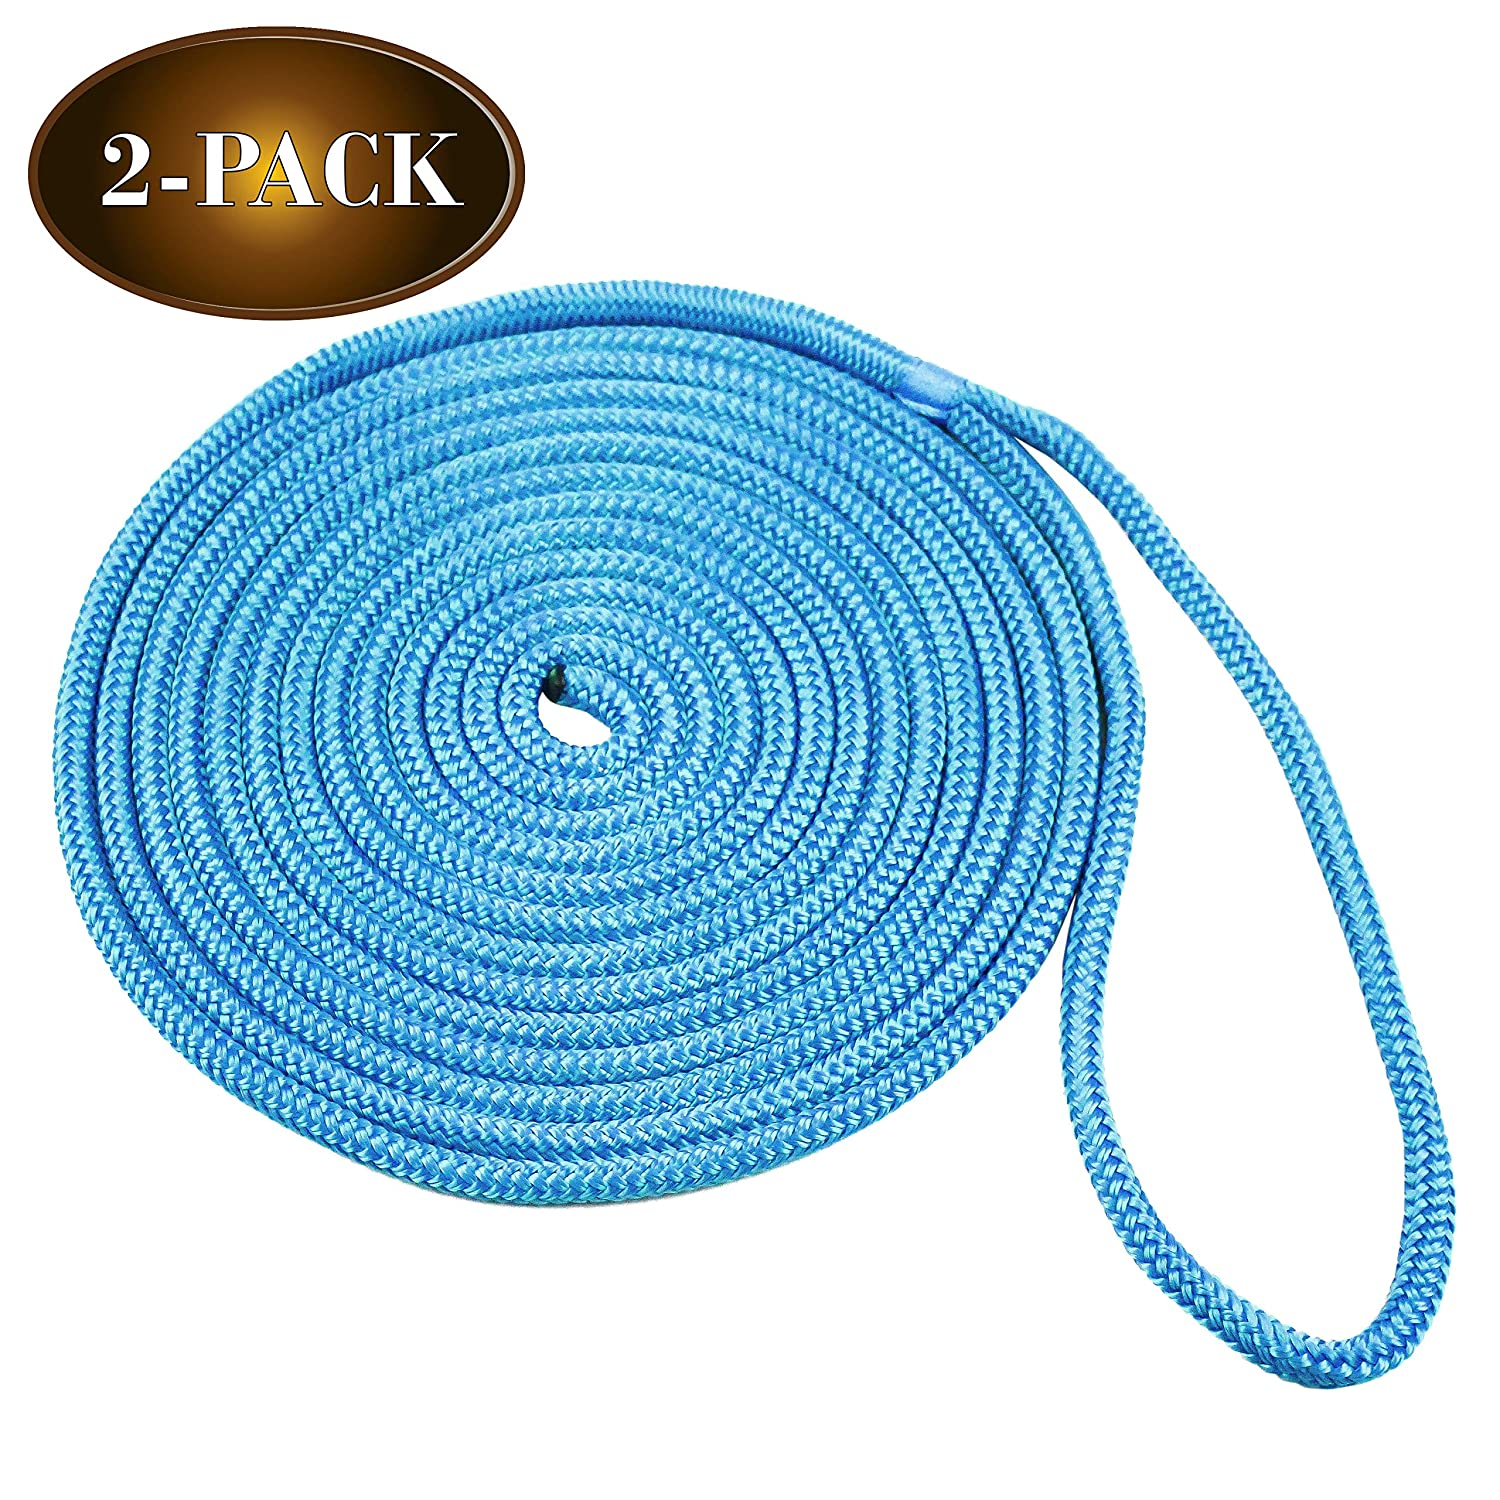 """1//2/"""" X 20/' Double-Braided Nylon Dock Line with 12/"""" Eyelet Dock Line for Boats DC Cargo Mall 2 Marine-Grade Double-Braided Dock Lines"""